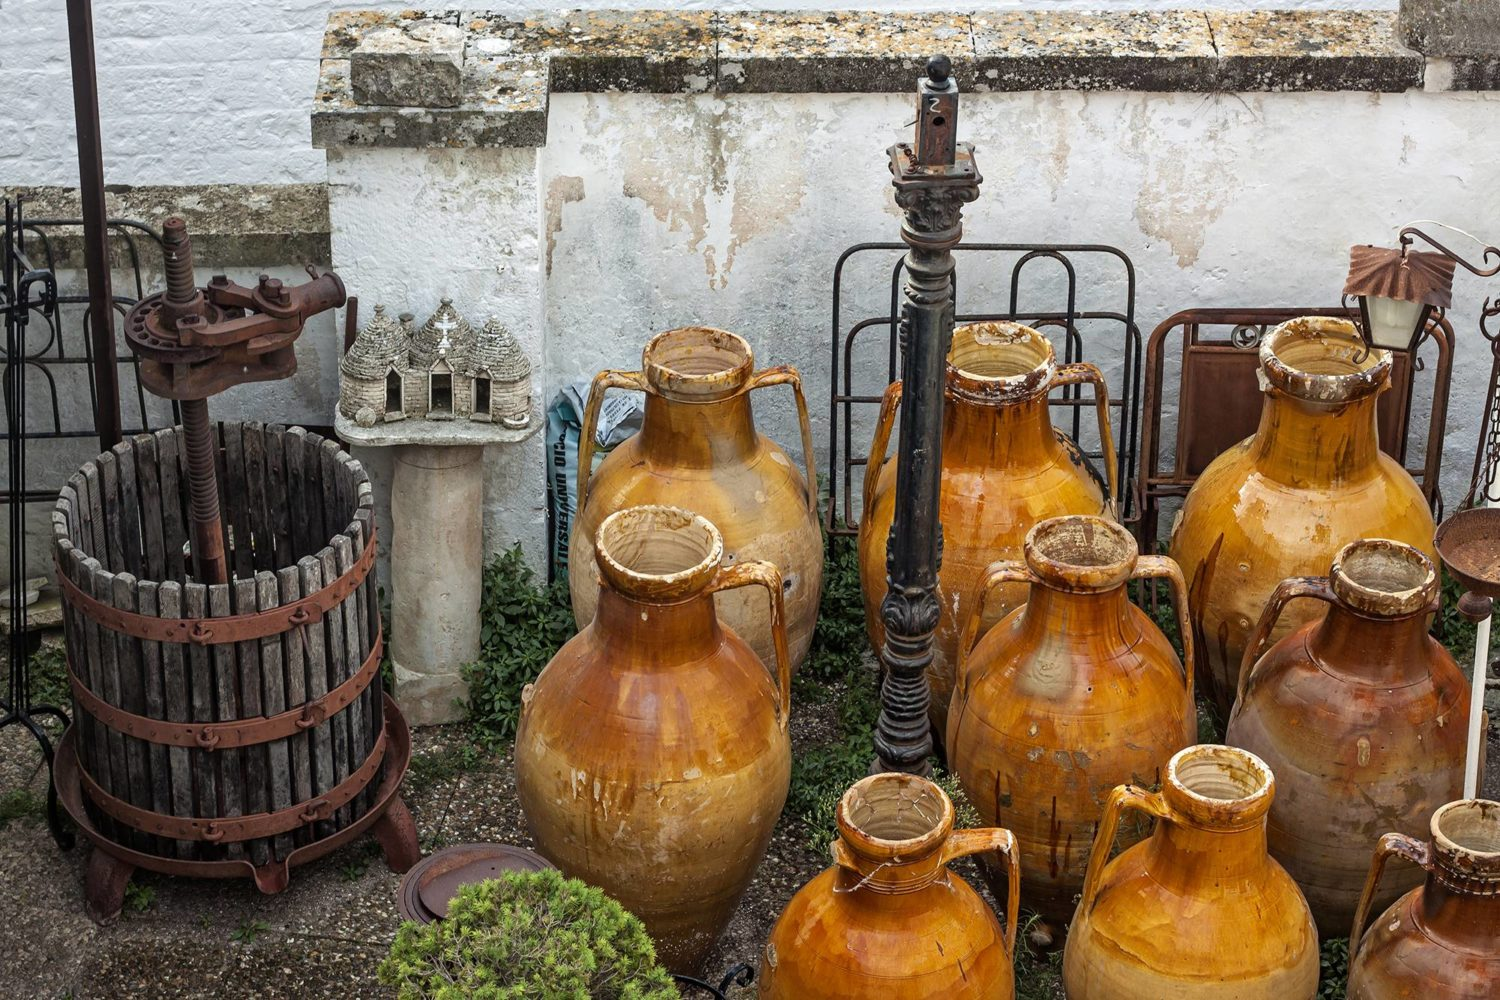 Apulian traditional wine production